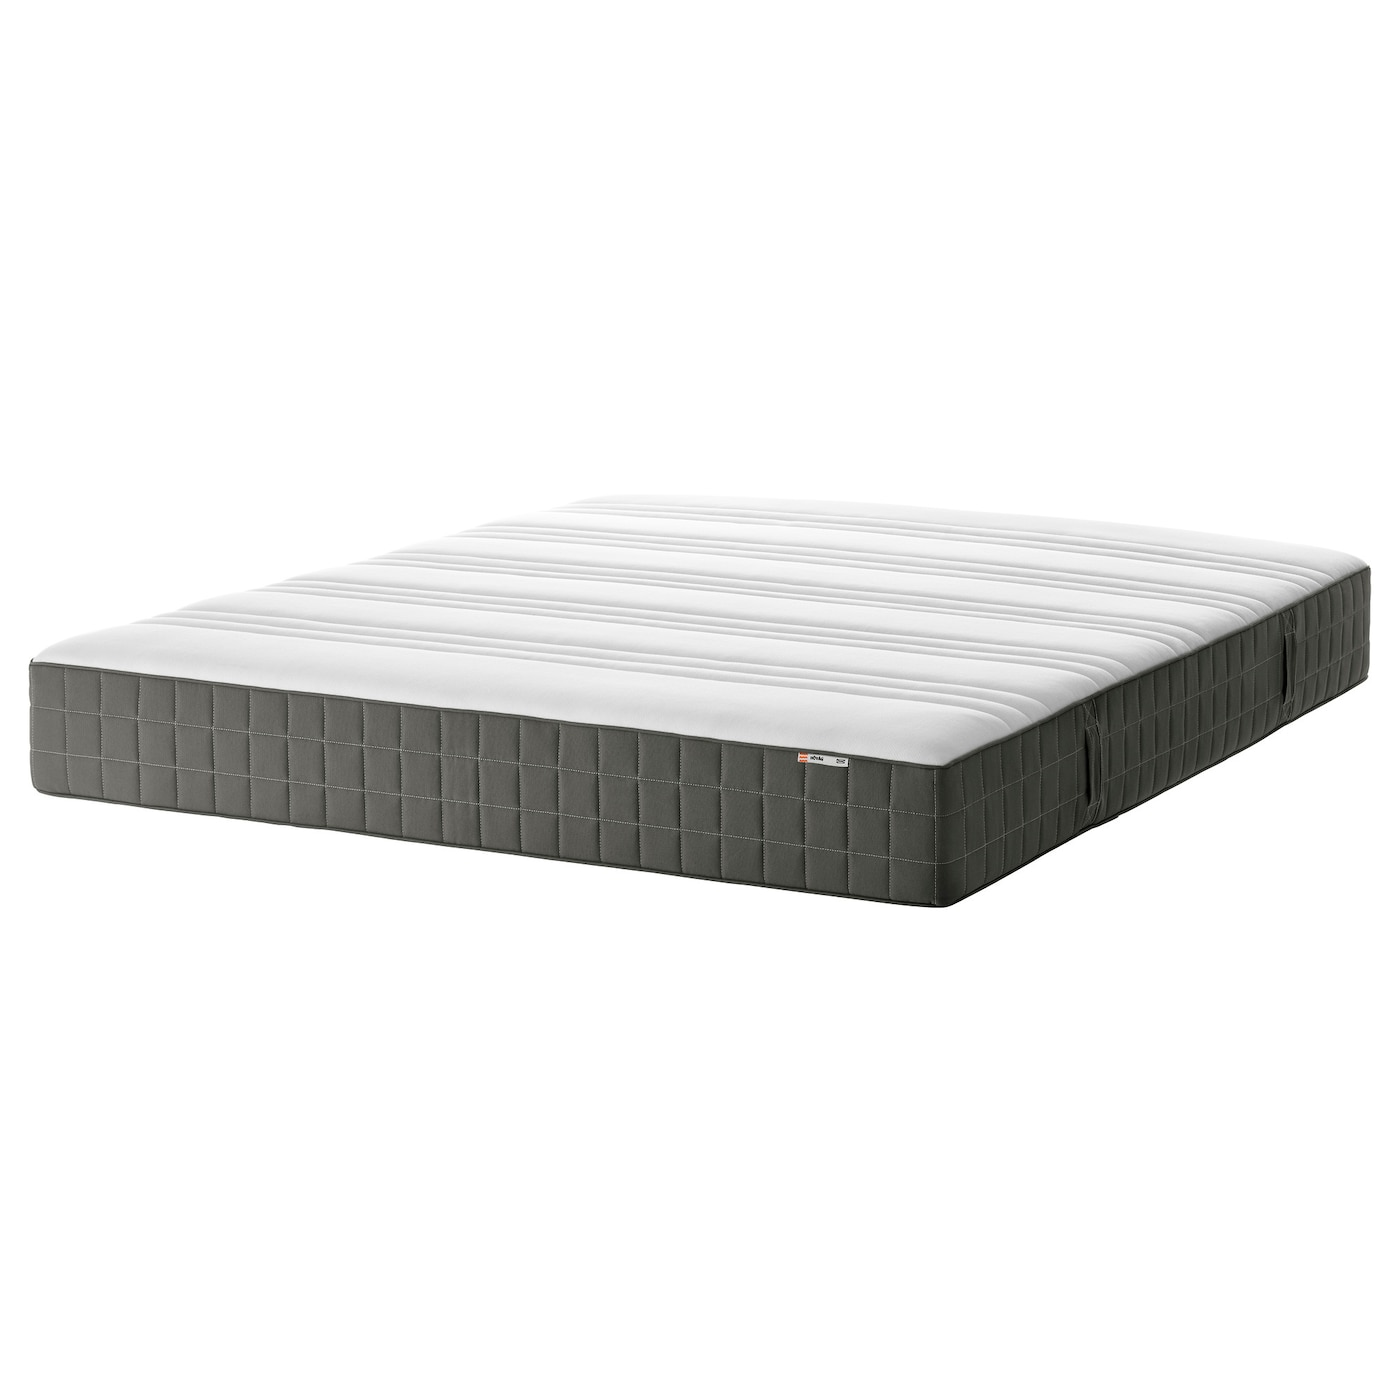 expanded life involved an crib recall in s nearly a of the safety mattress star recalls risk vyssa because ikea example mattresses